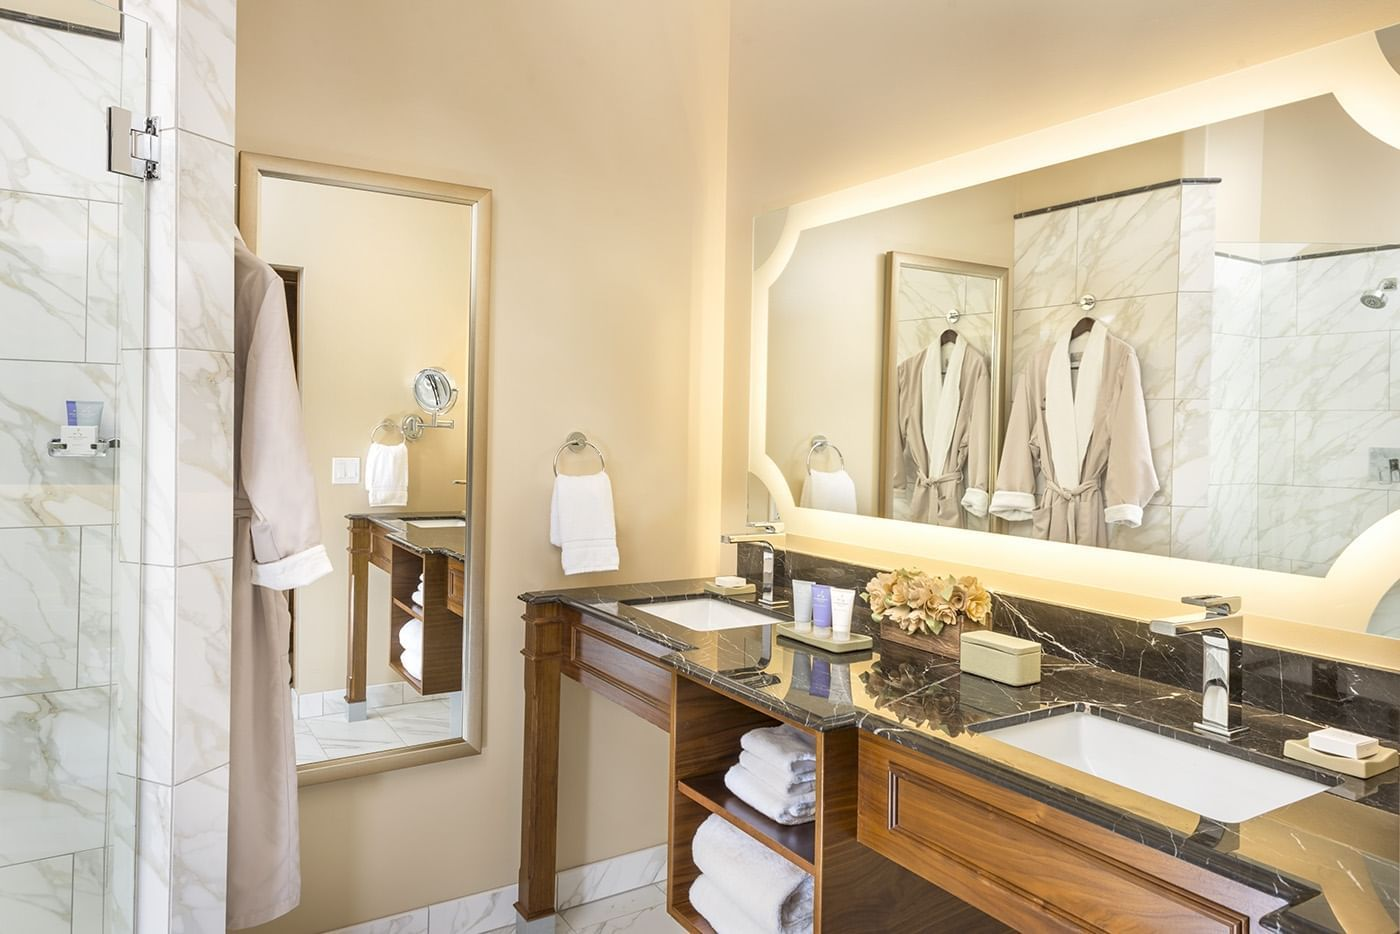 Our guest room bathroom with two sinks, full length mirror, and